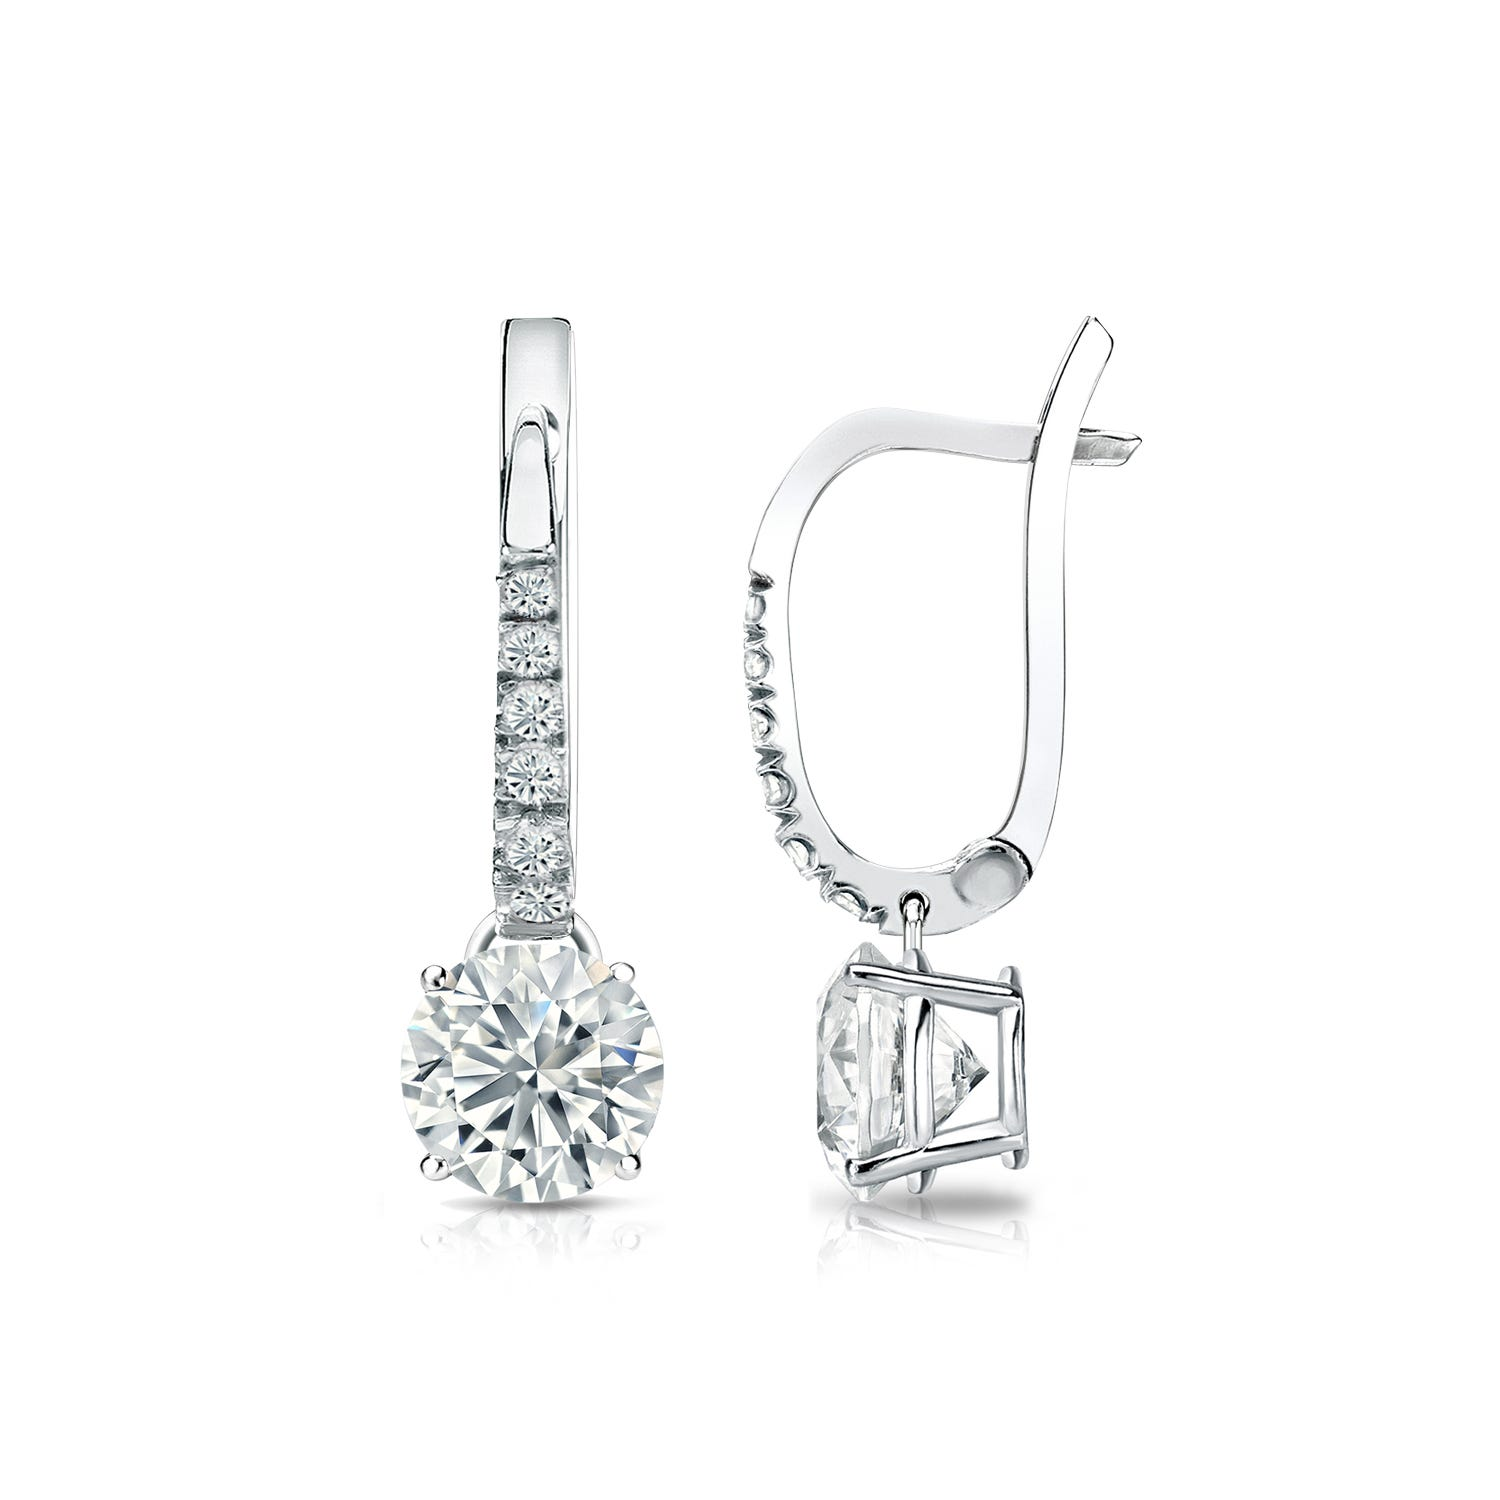 Diamond 1ctw. 4-Prong Round Drop Earrings in 14k White Gold VS2 Clarity